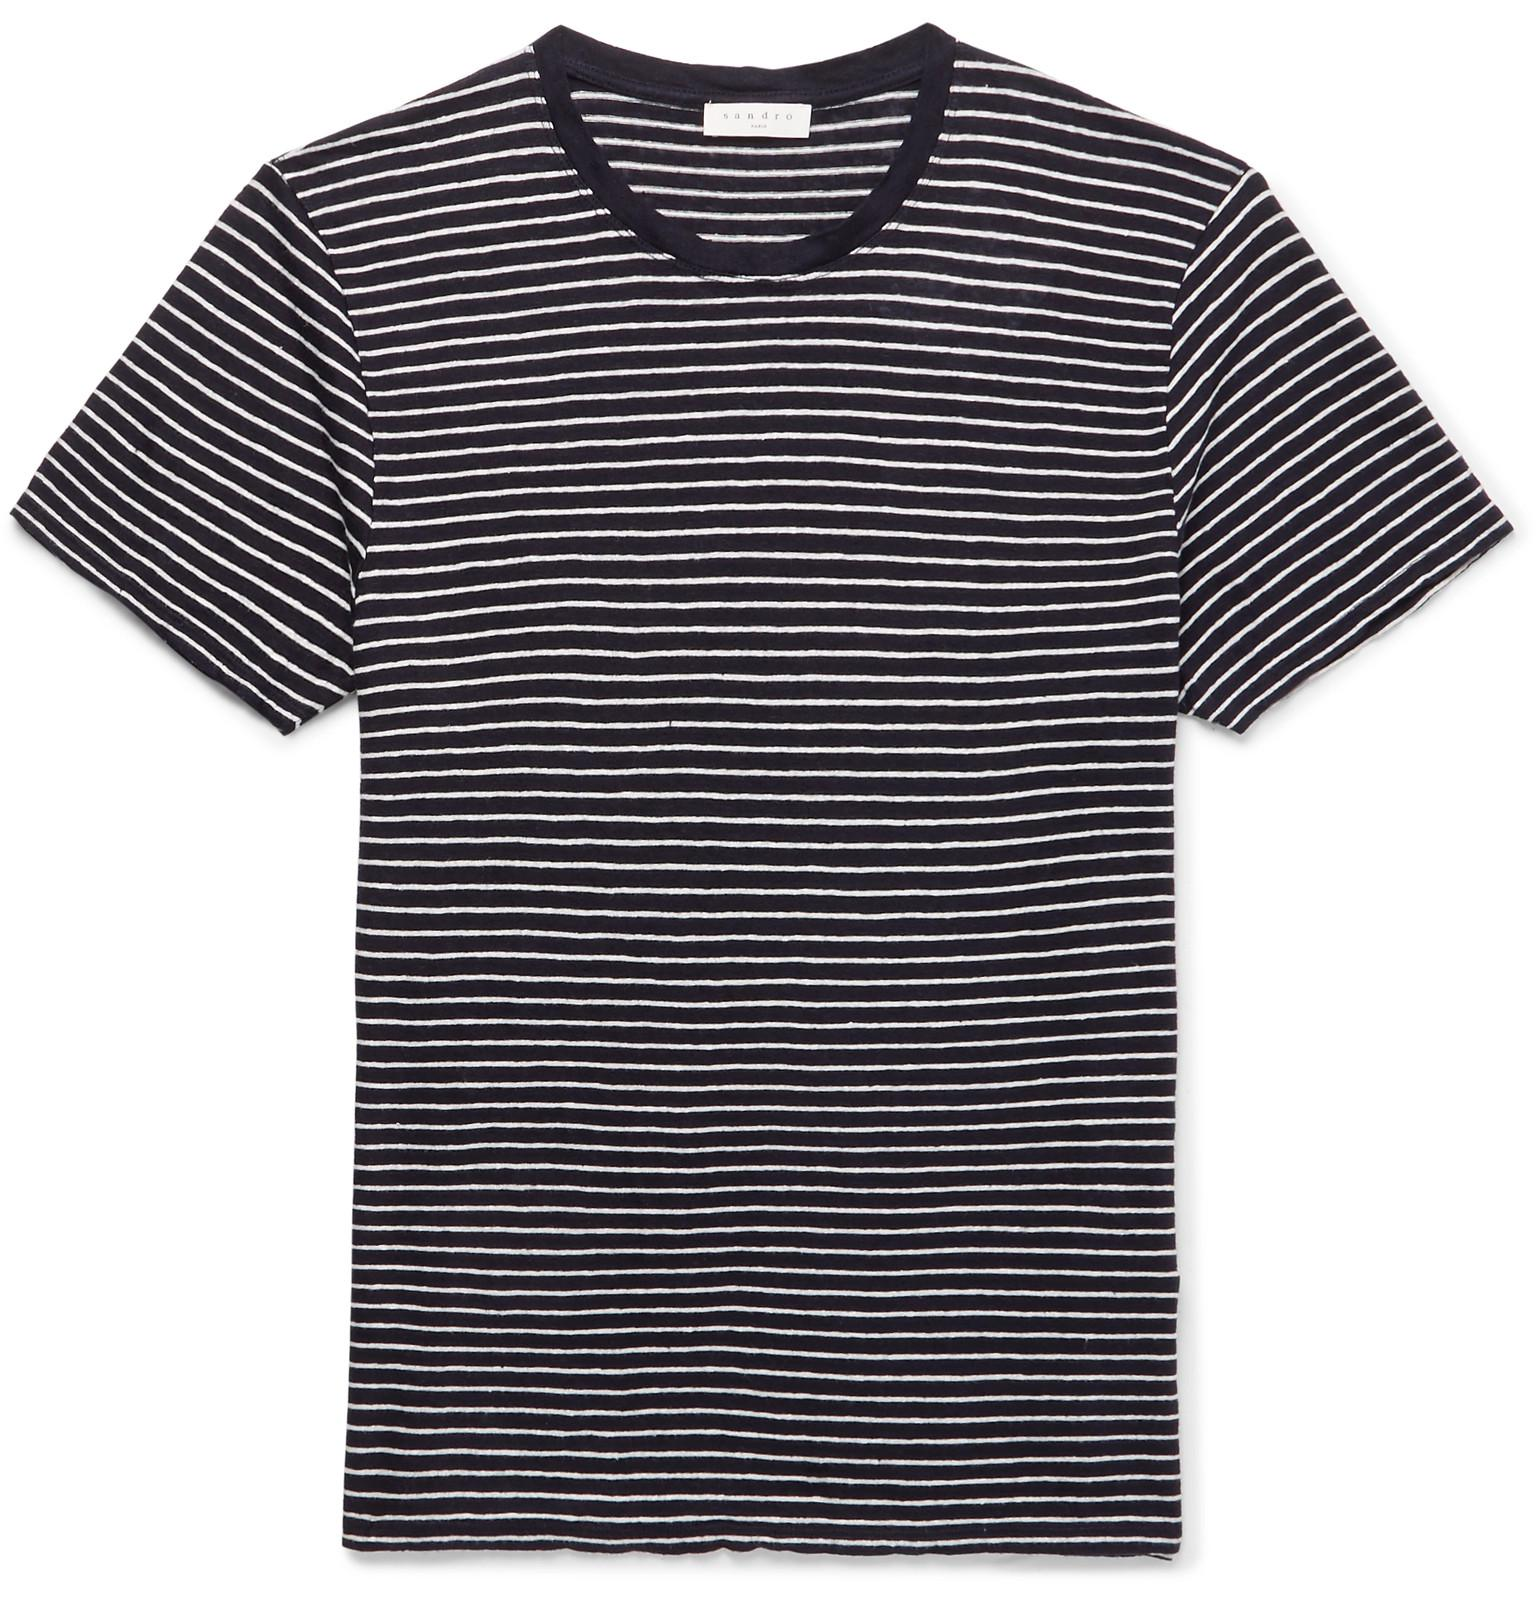 Sandro. Men's Blue Striped Linen T-shirt